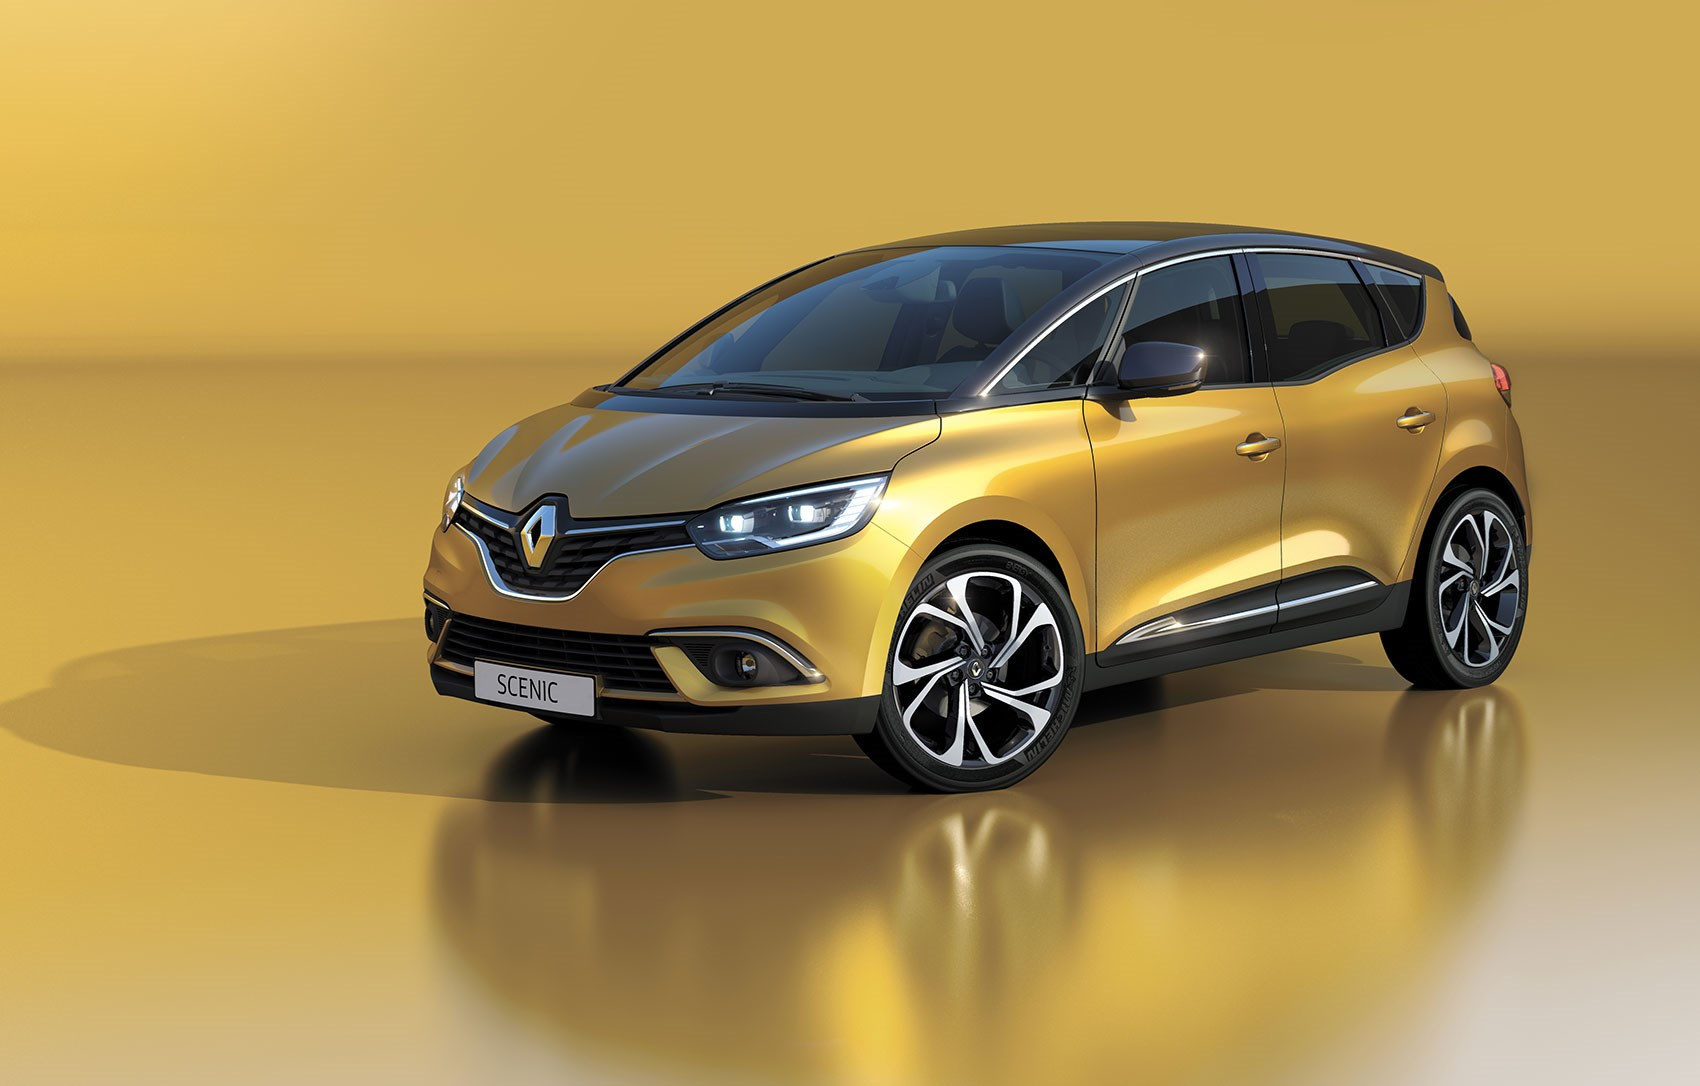 the new 2016 renault scenic is here have they reinvented the mpv by car magazine. Black Bedroom Furniture Sets. Home Design Ideas